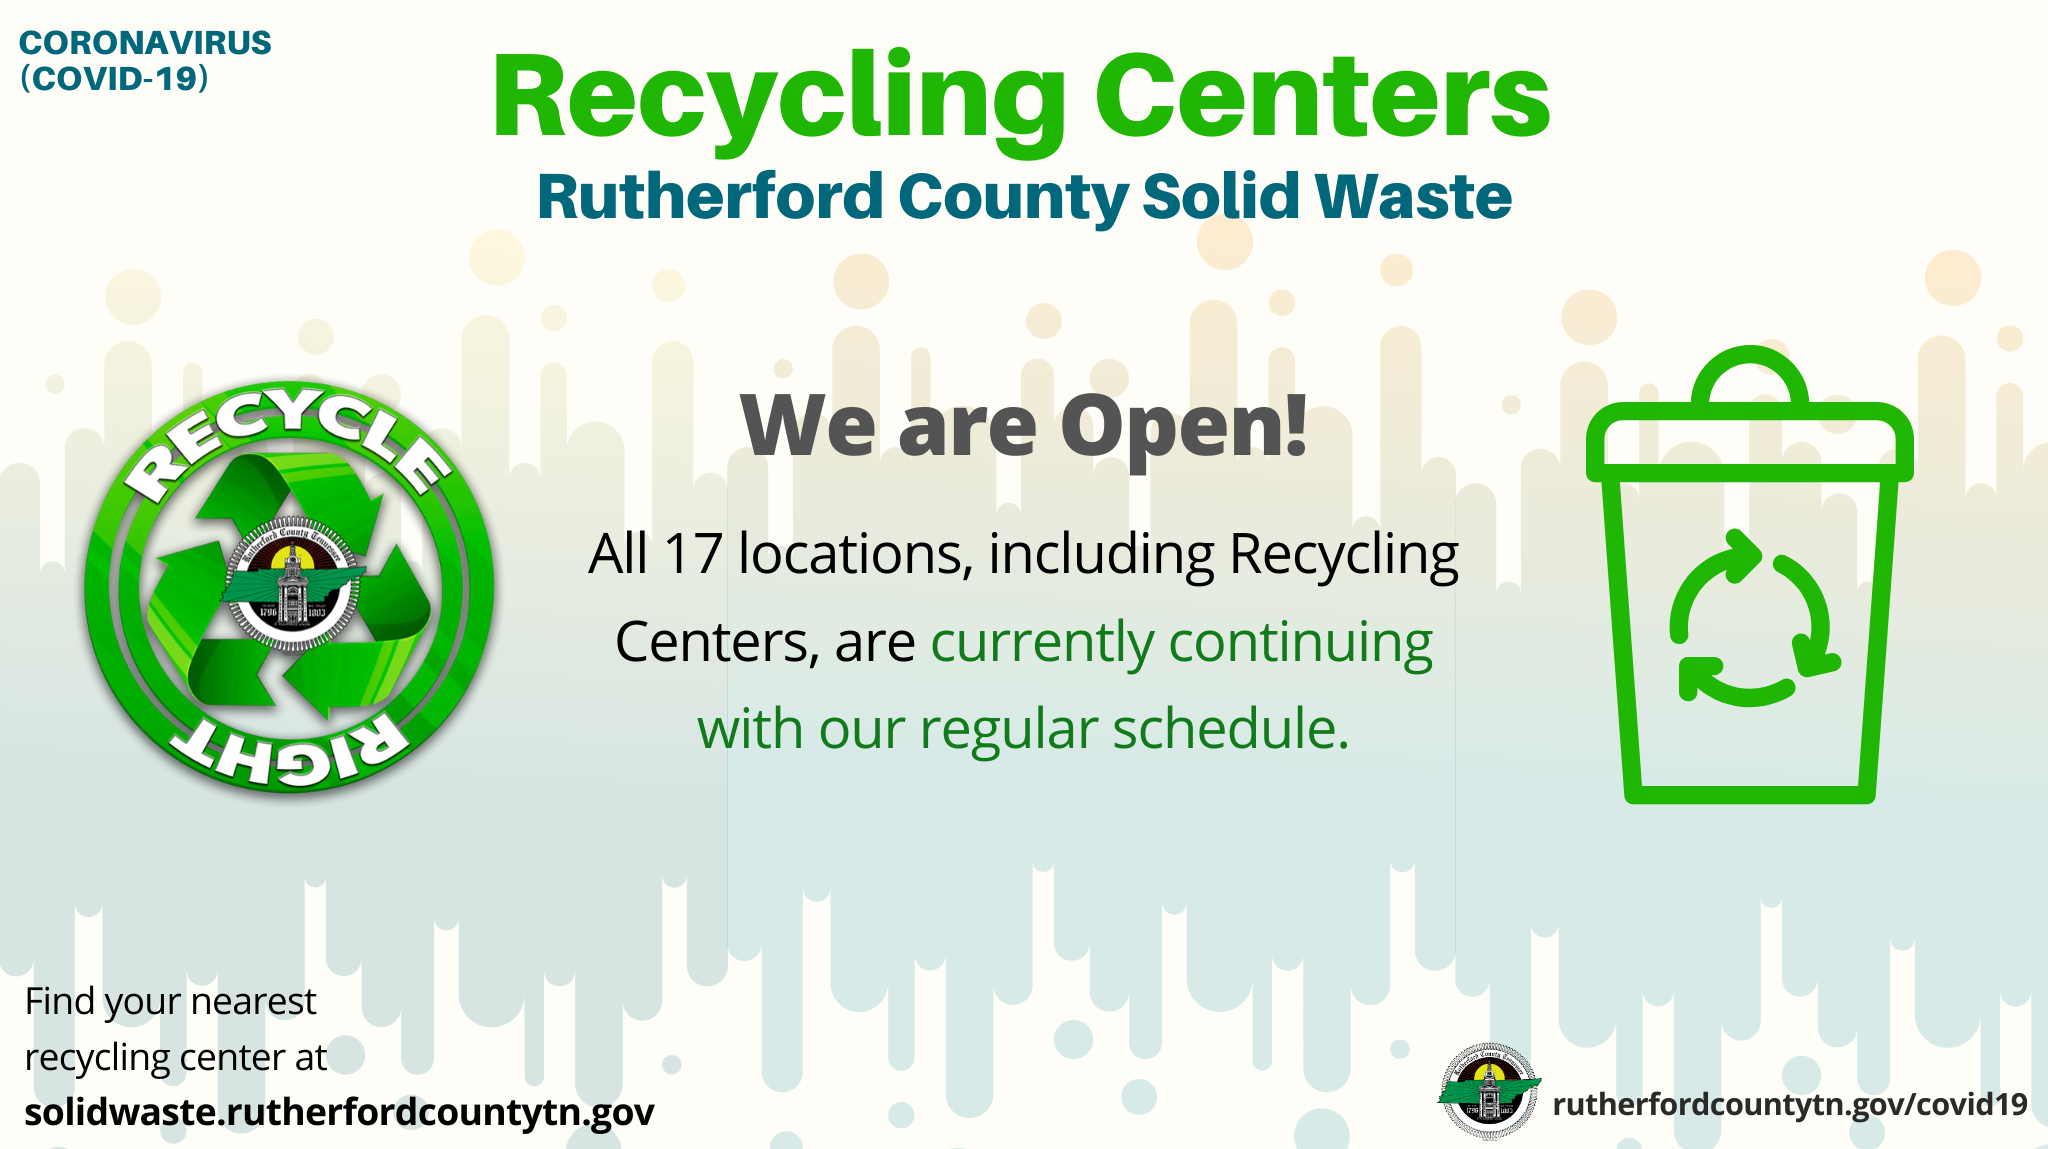 Rutherford County Solid Waste Limits Bulk Items and No Longer Accepts Building Materials Until Further Notice